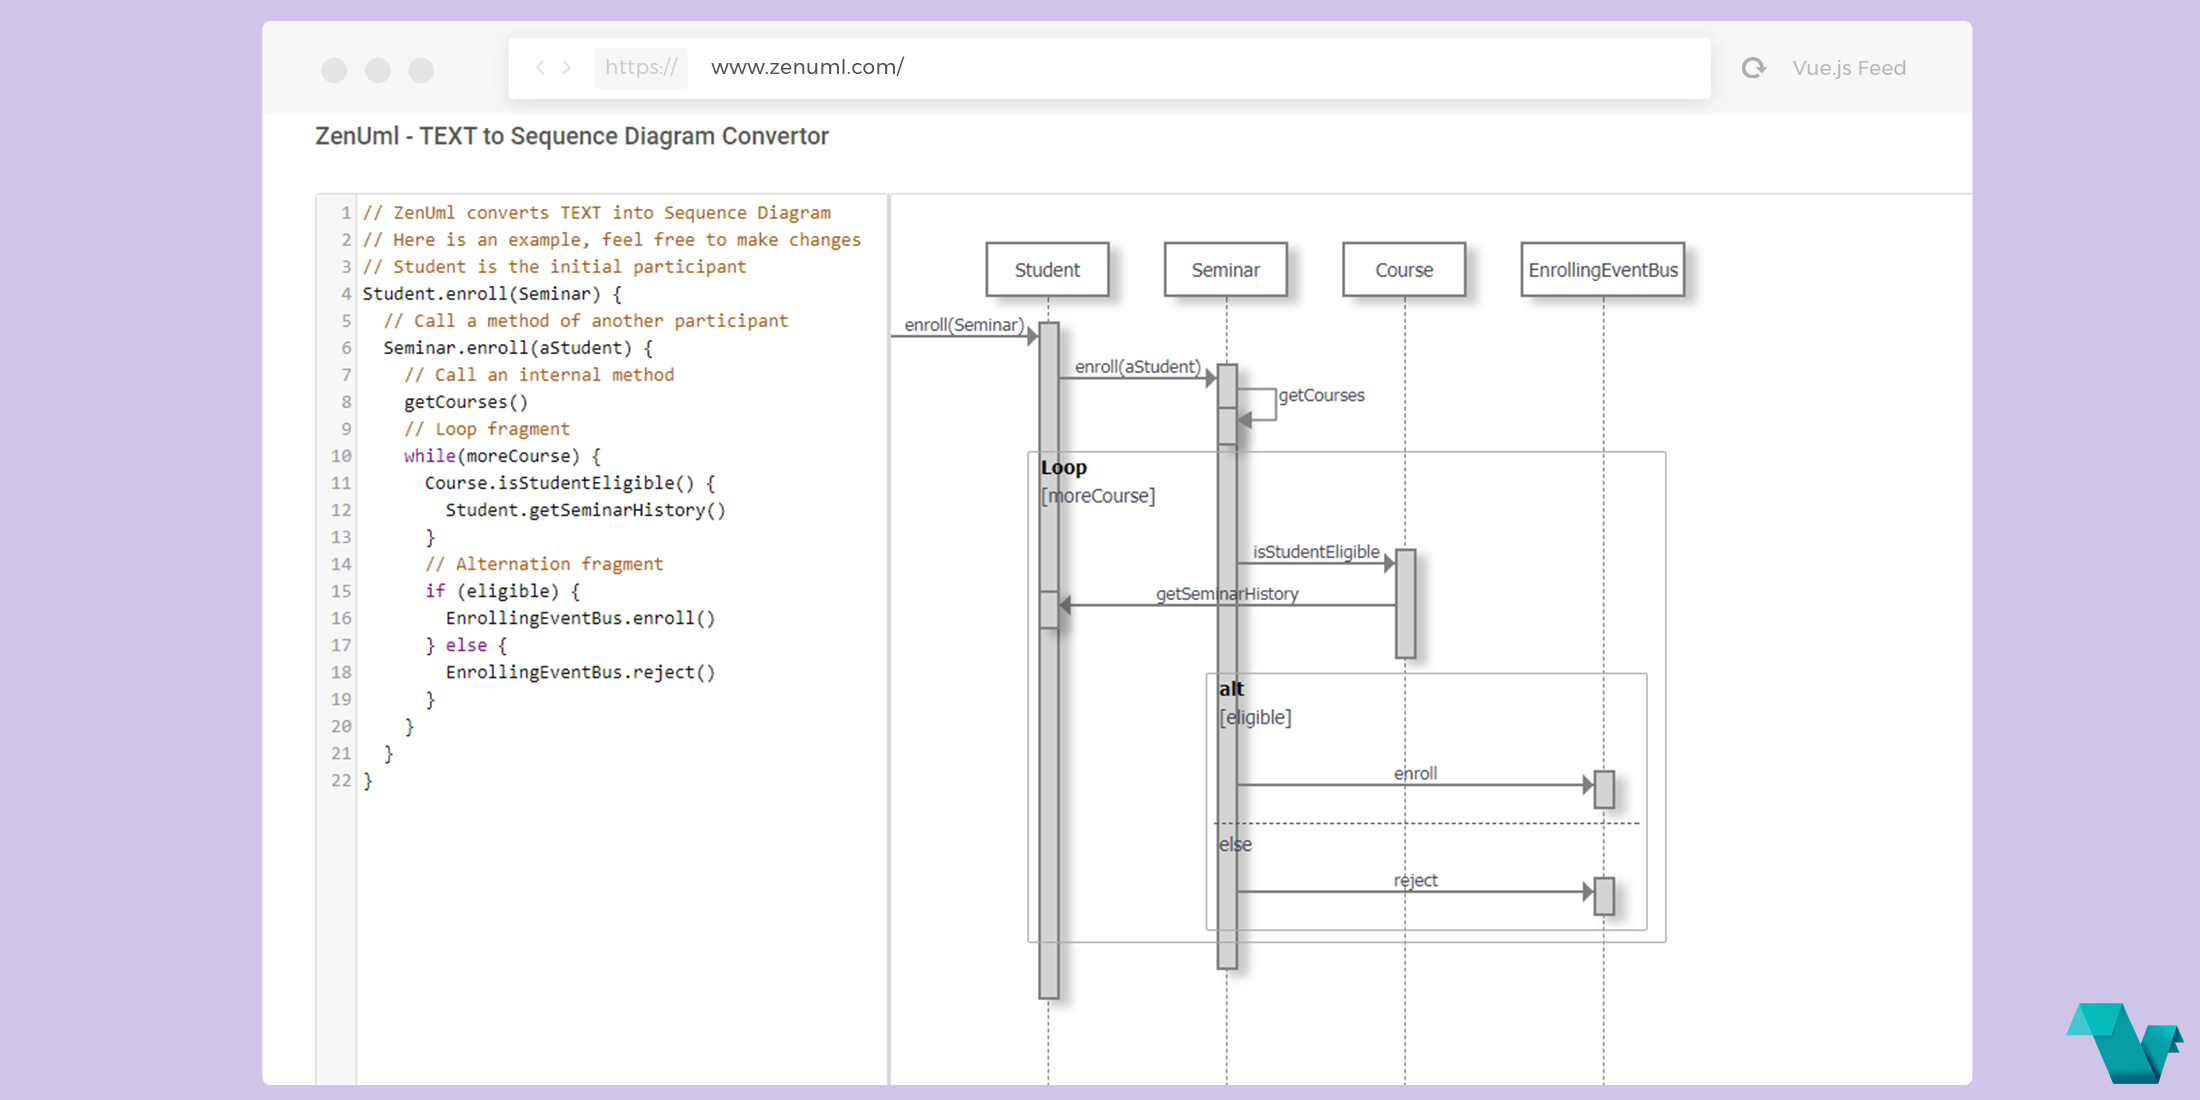 Zenuml text to sequence diagram converter powered by vuejs vue blog image ccuart Gallery